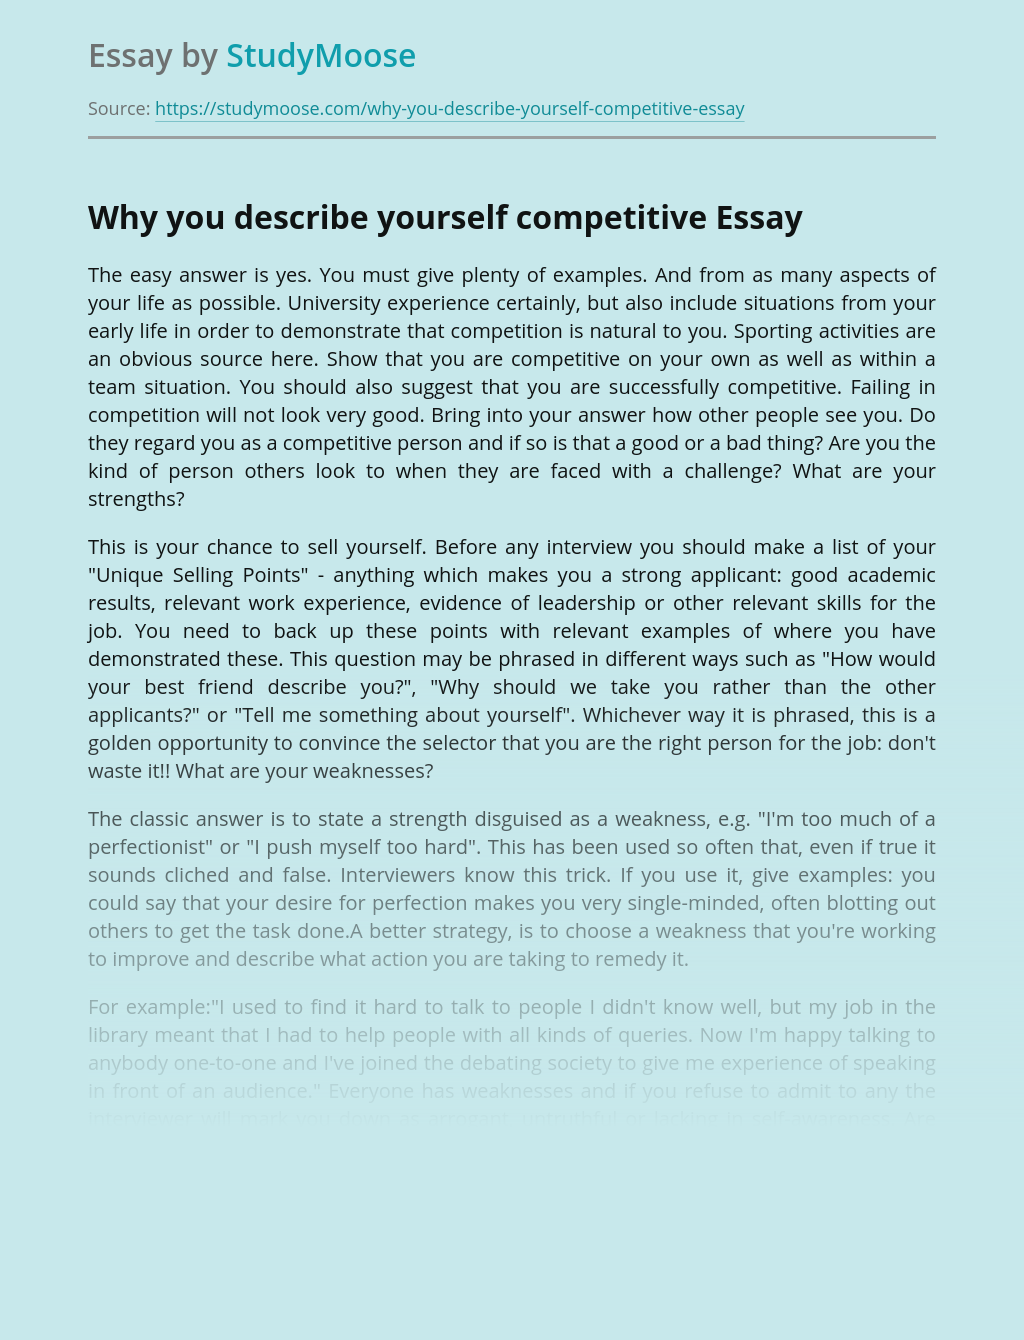 Sample essays describing oneself examples of a cover letter for a resume job